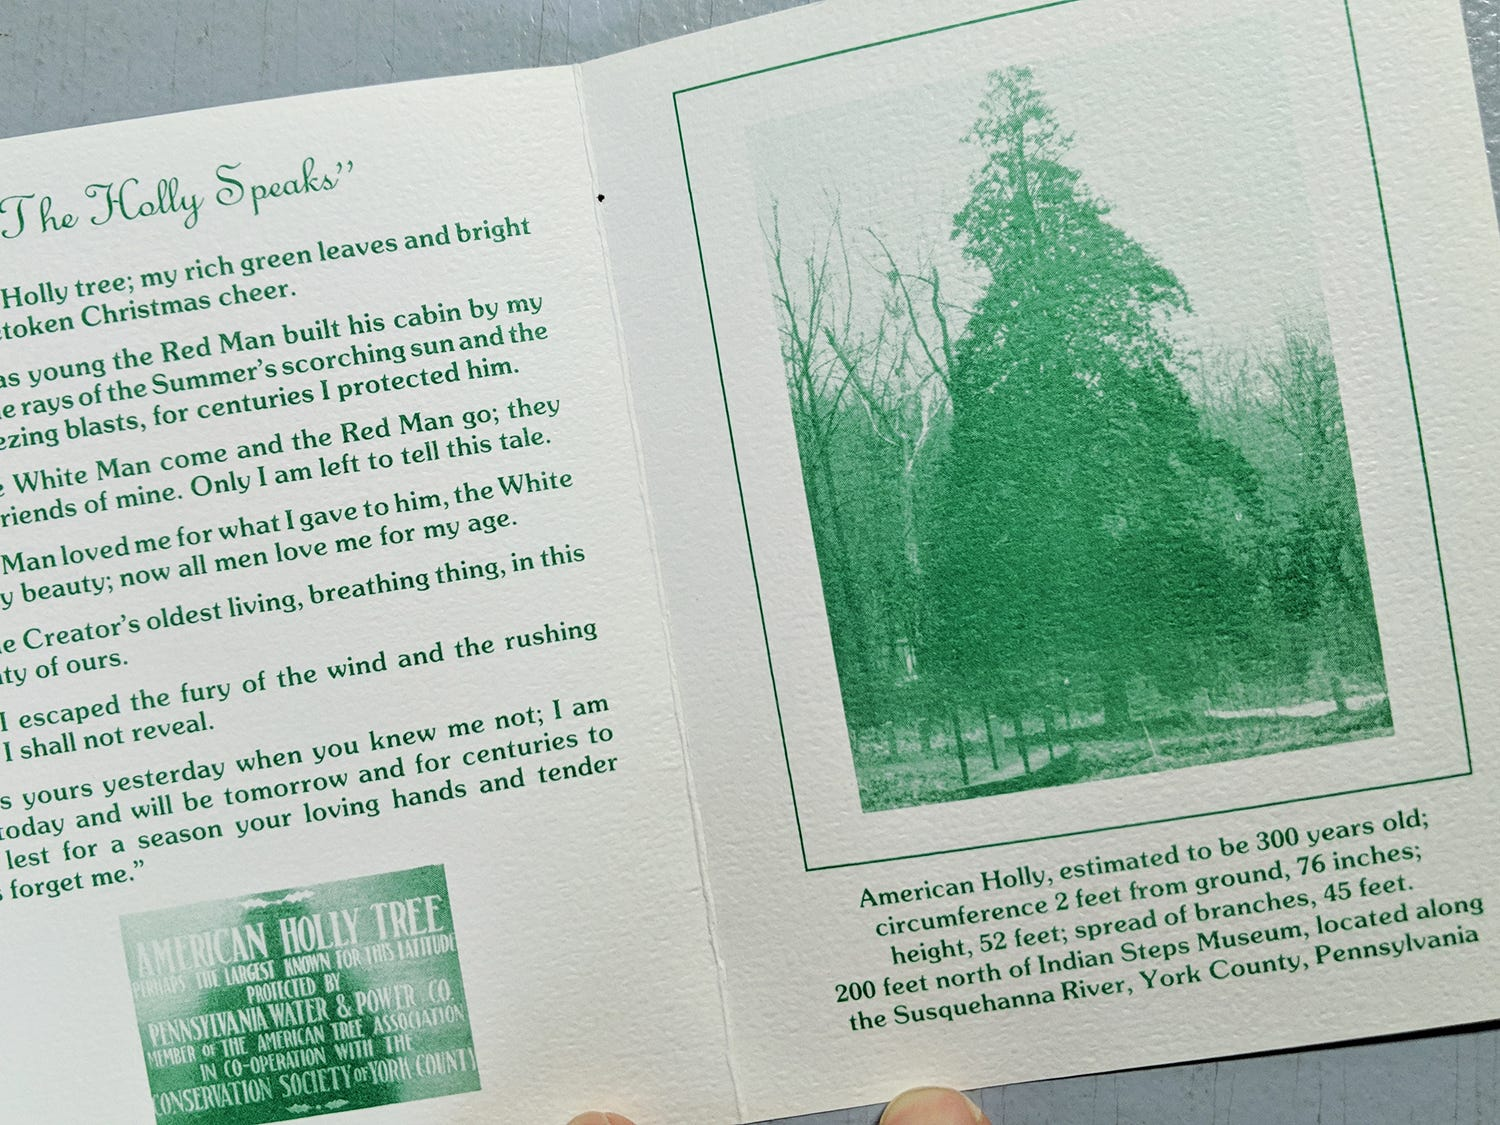 A museum brochure from about 50 years ago tells the story of the the American holly tree. The tree, believed to be 350 years old, is part of the Indian Steps Museum along the Susquehanna River in Lower Chanceford Township.